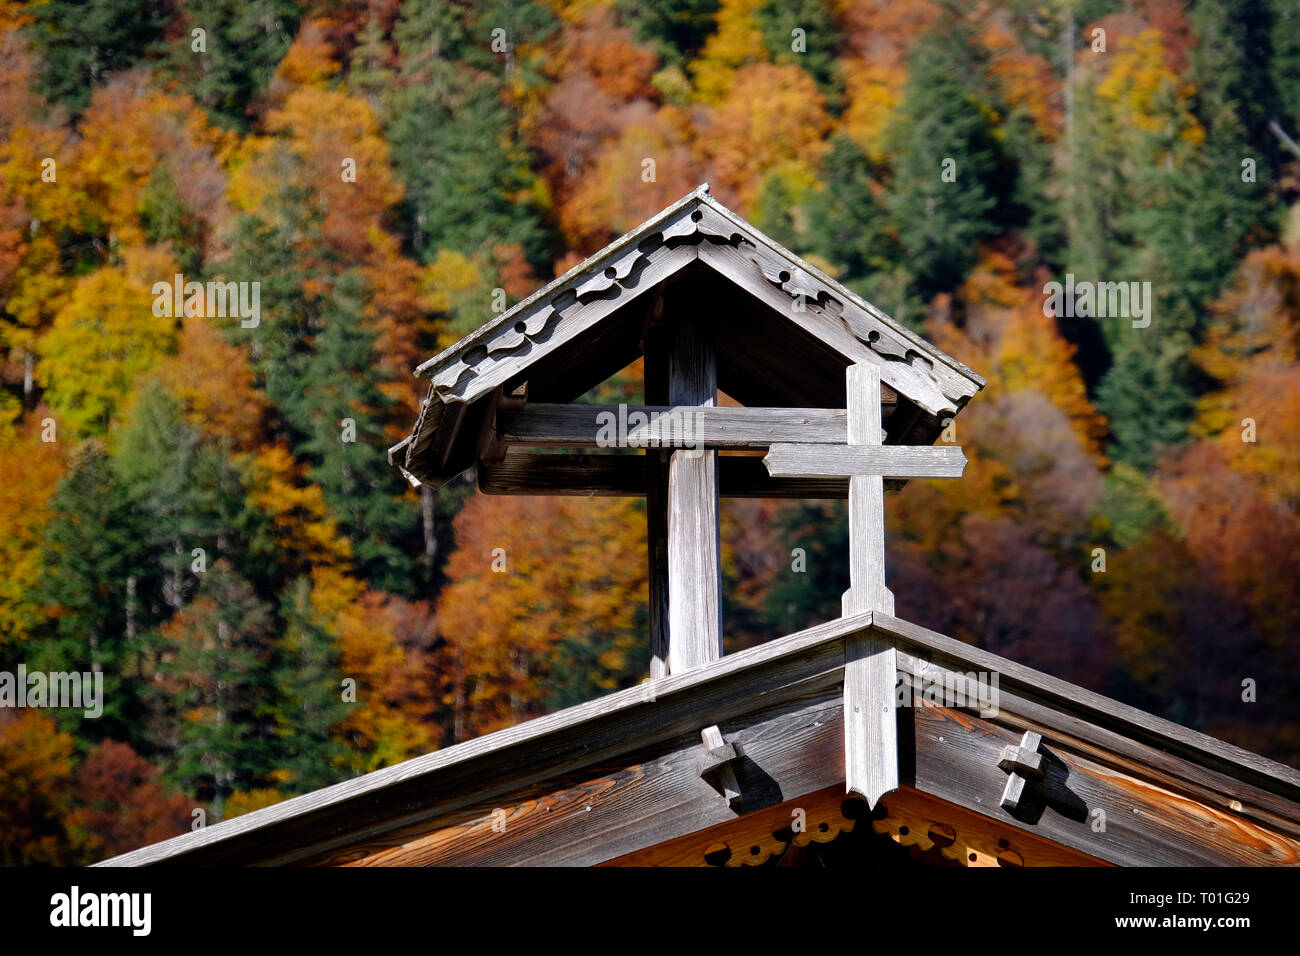 Old Chapel in the Austrian Alps. Eng Alm, Karwendel. - Stock Image